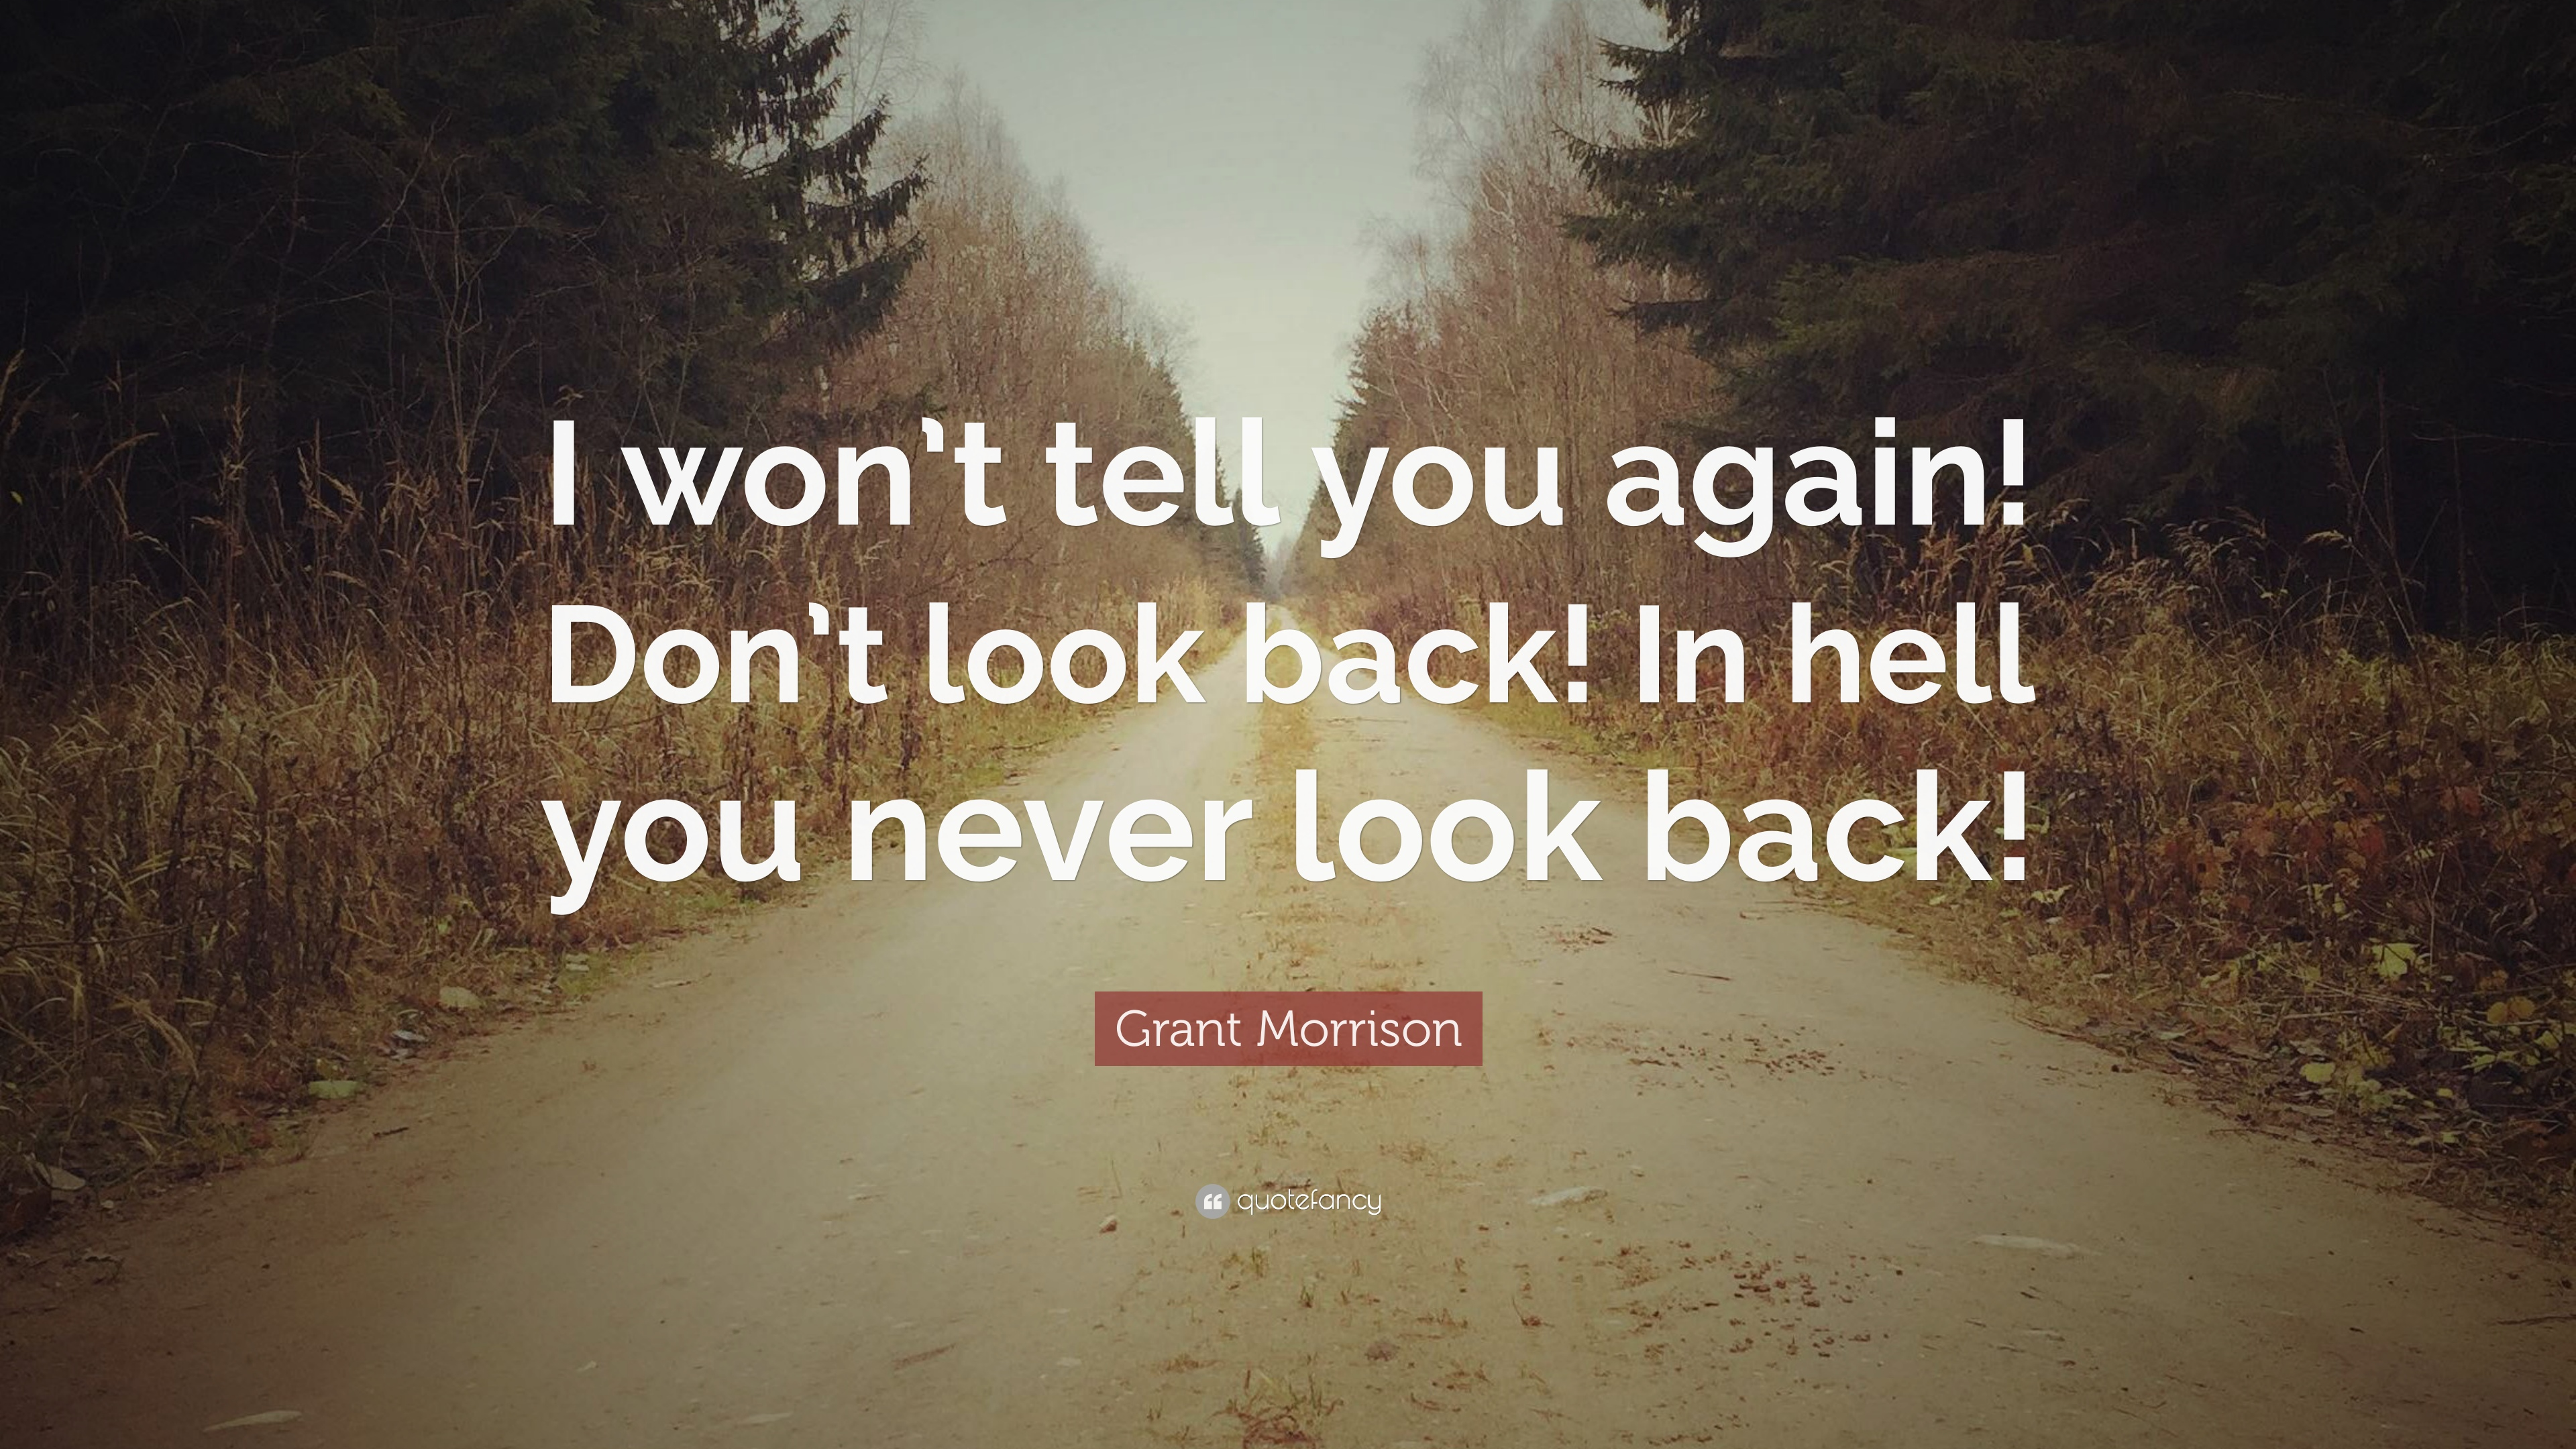 i never looked back again Never look back quotes may you find comfort and joy in these encouraging never look back quotes never look back unless you are planning to go that way - henry david thoreau let us not look back in anger.